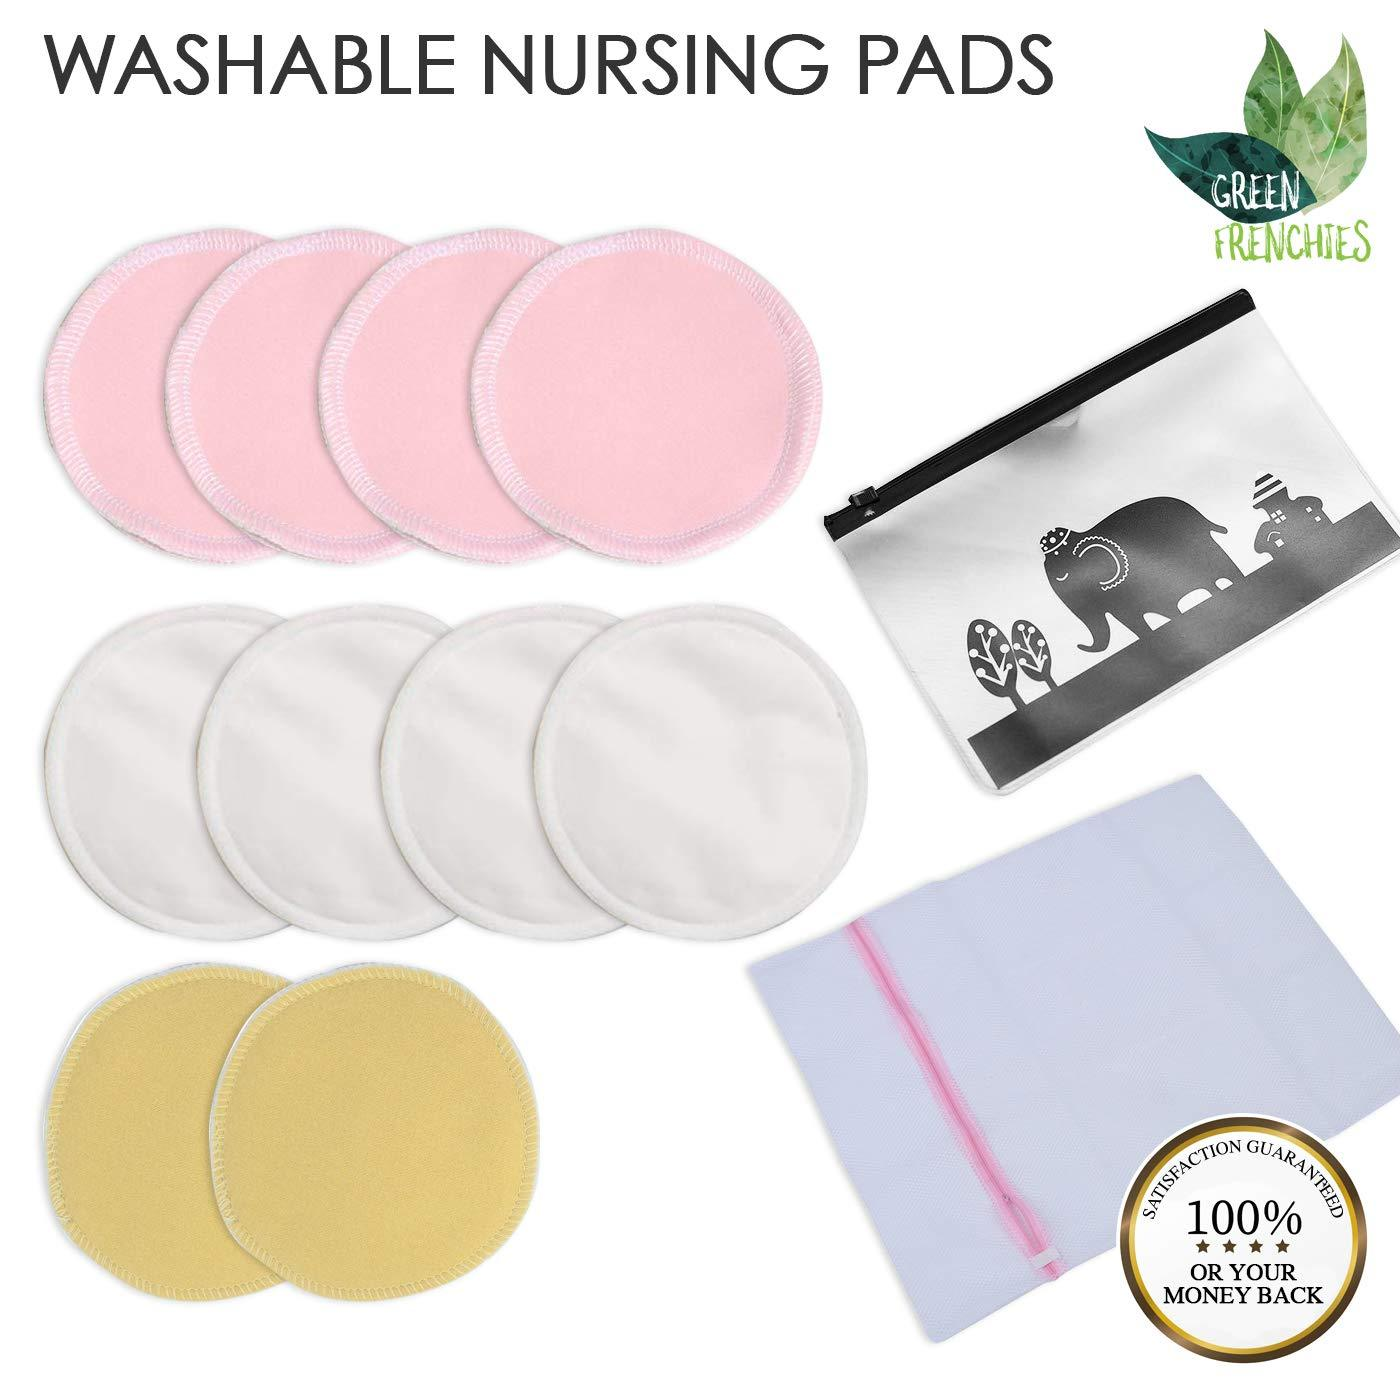 Click here to buy G.F.Nursing Pads Reusable Nursing Pads, Washable, Nursing Pads, 10 Breastfeeding pads, Medium size, 3colors,... by Green Frenchies.